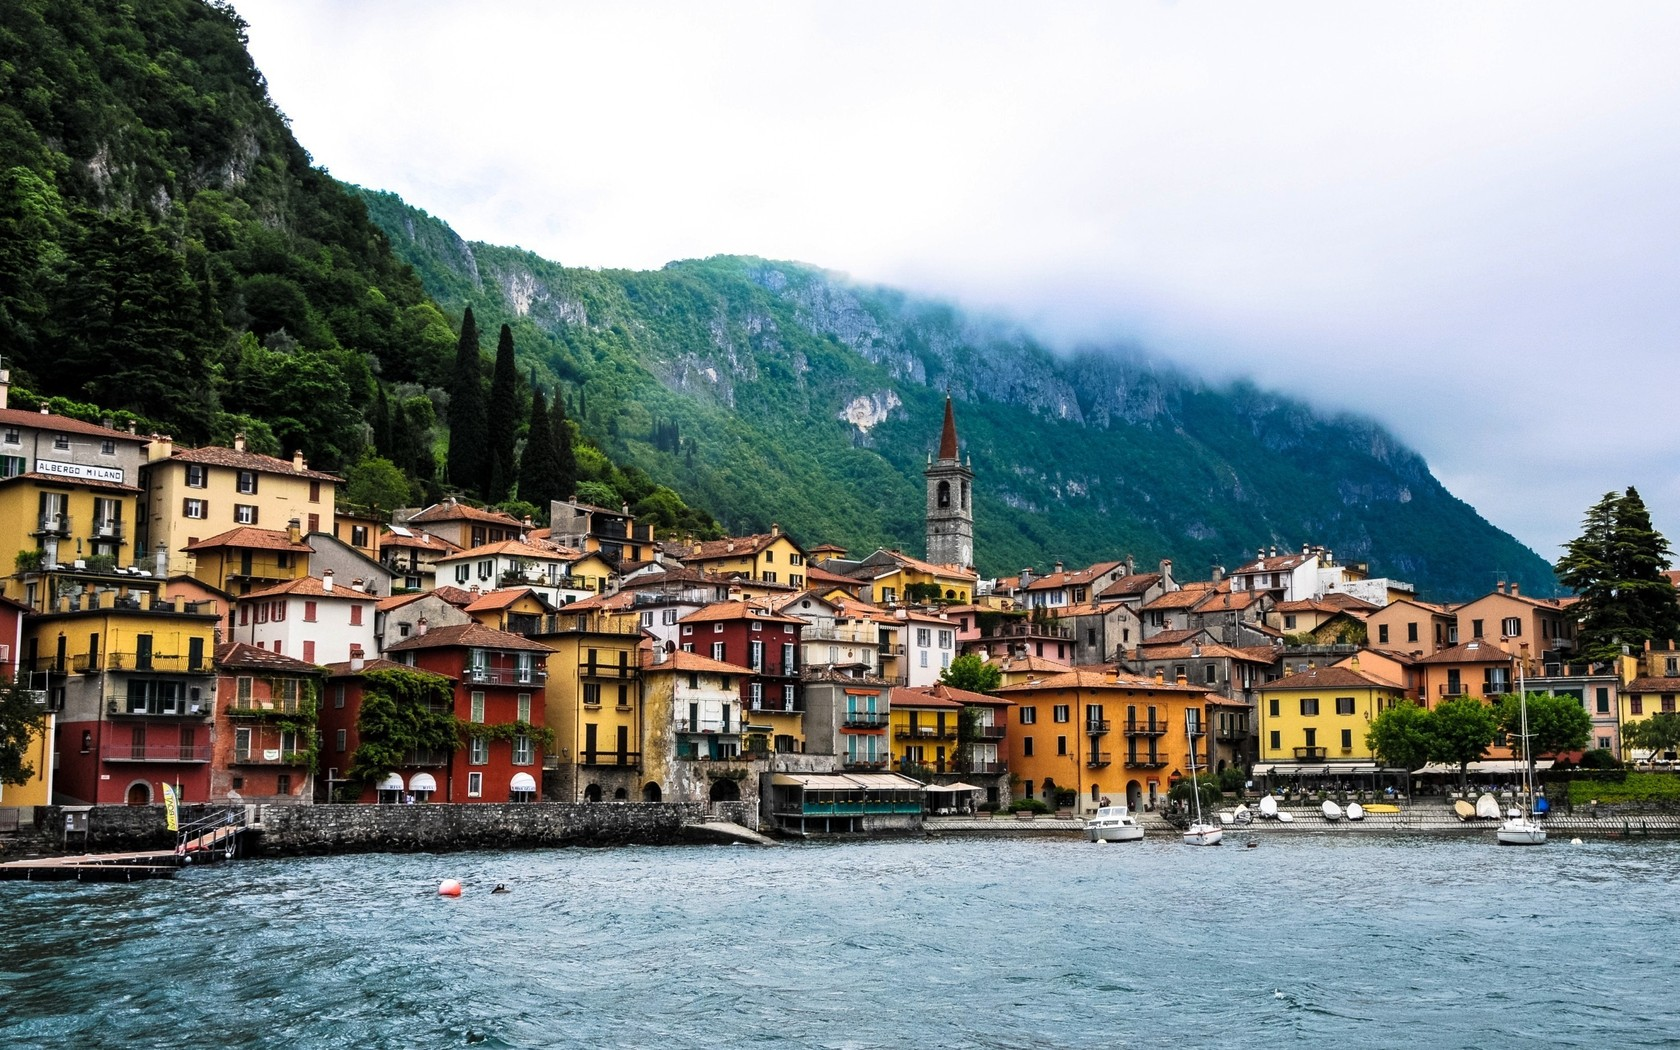 Lake Como High Definition Wallpaper   Travel HD Wallpapers 1680x1050